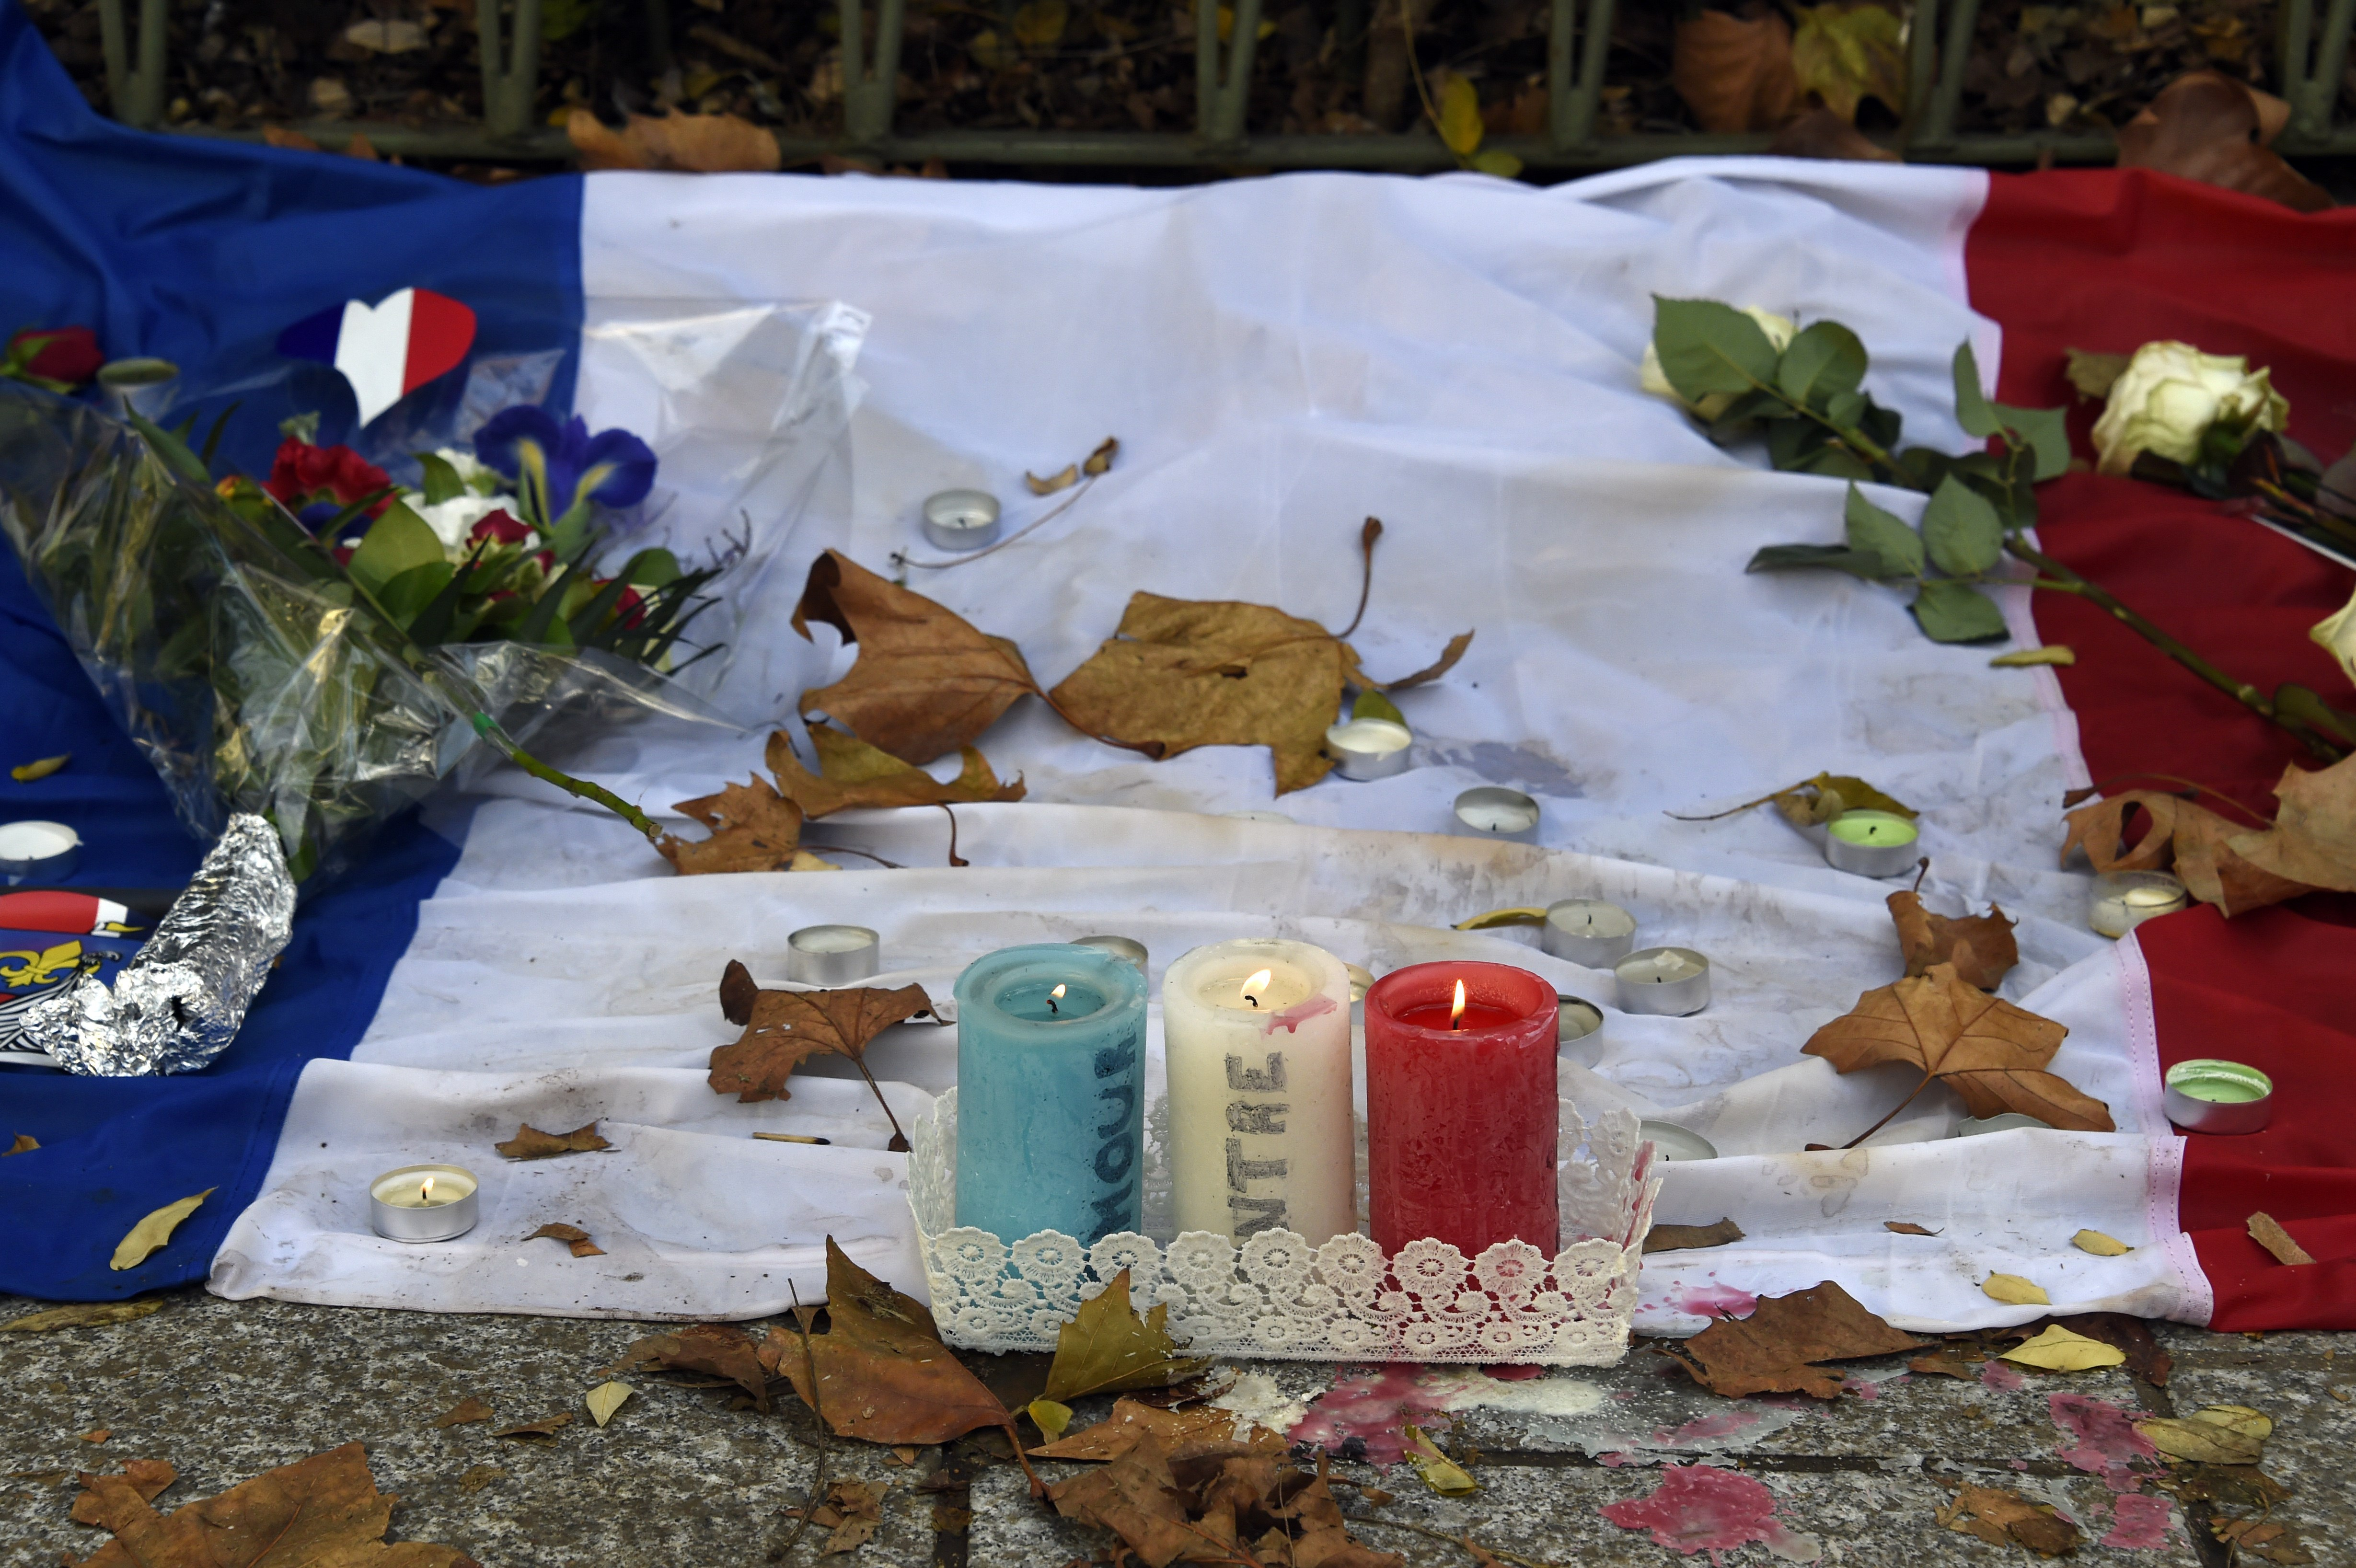 Candles bearing the colours of the French flag burn at a makeshift memorial for the victims of the attacks, on November 18, 2